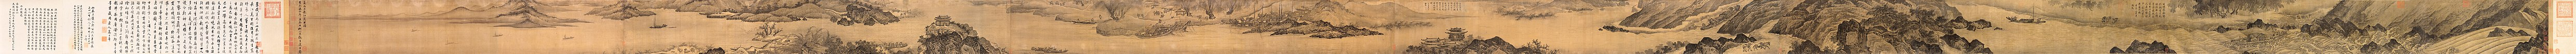 Ten Thousand Miles of the Yangtze River, a Ming Dynasty landscape painting.